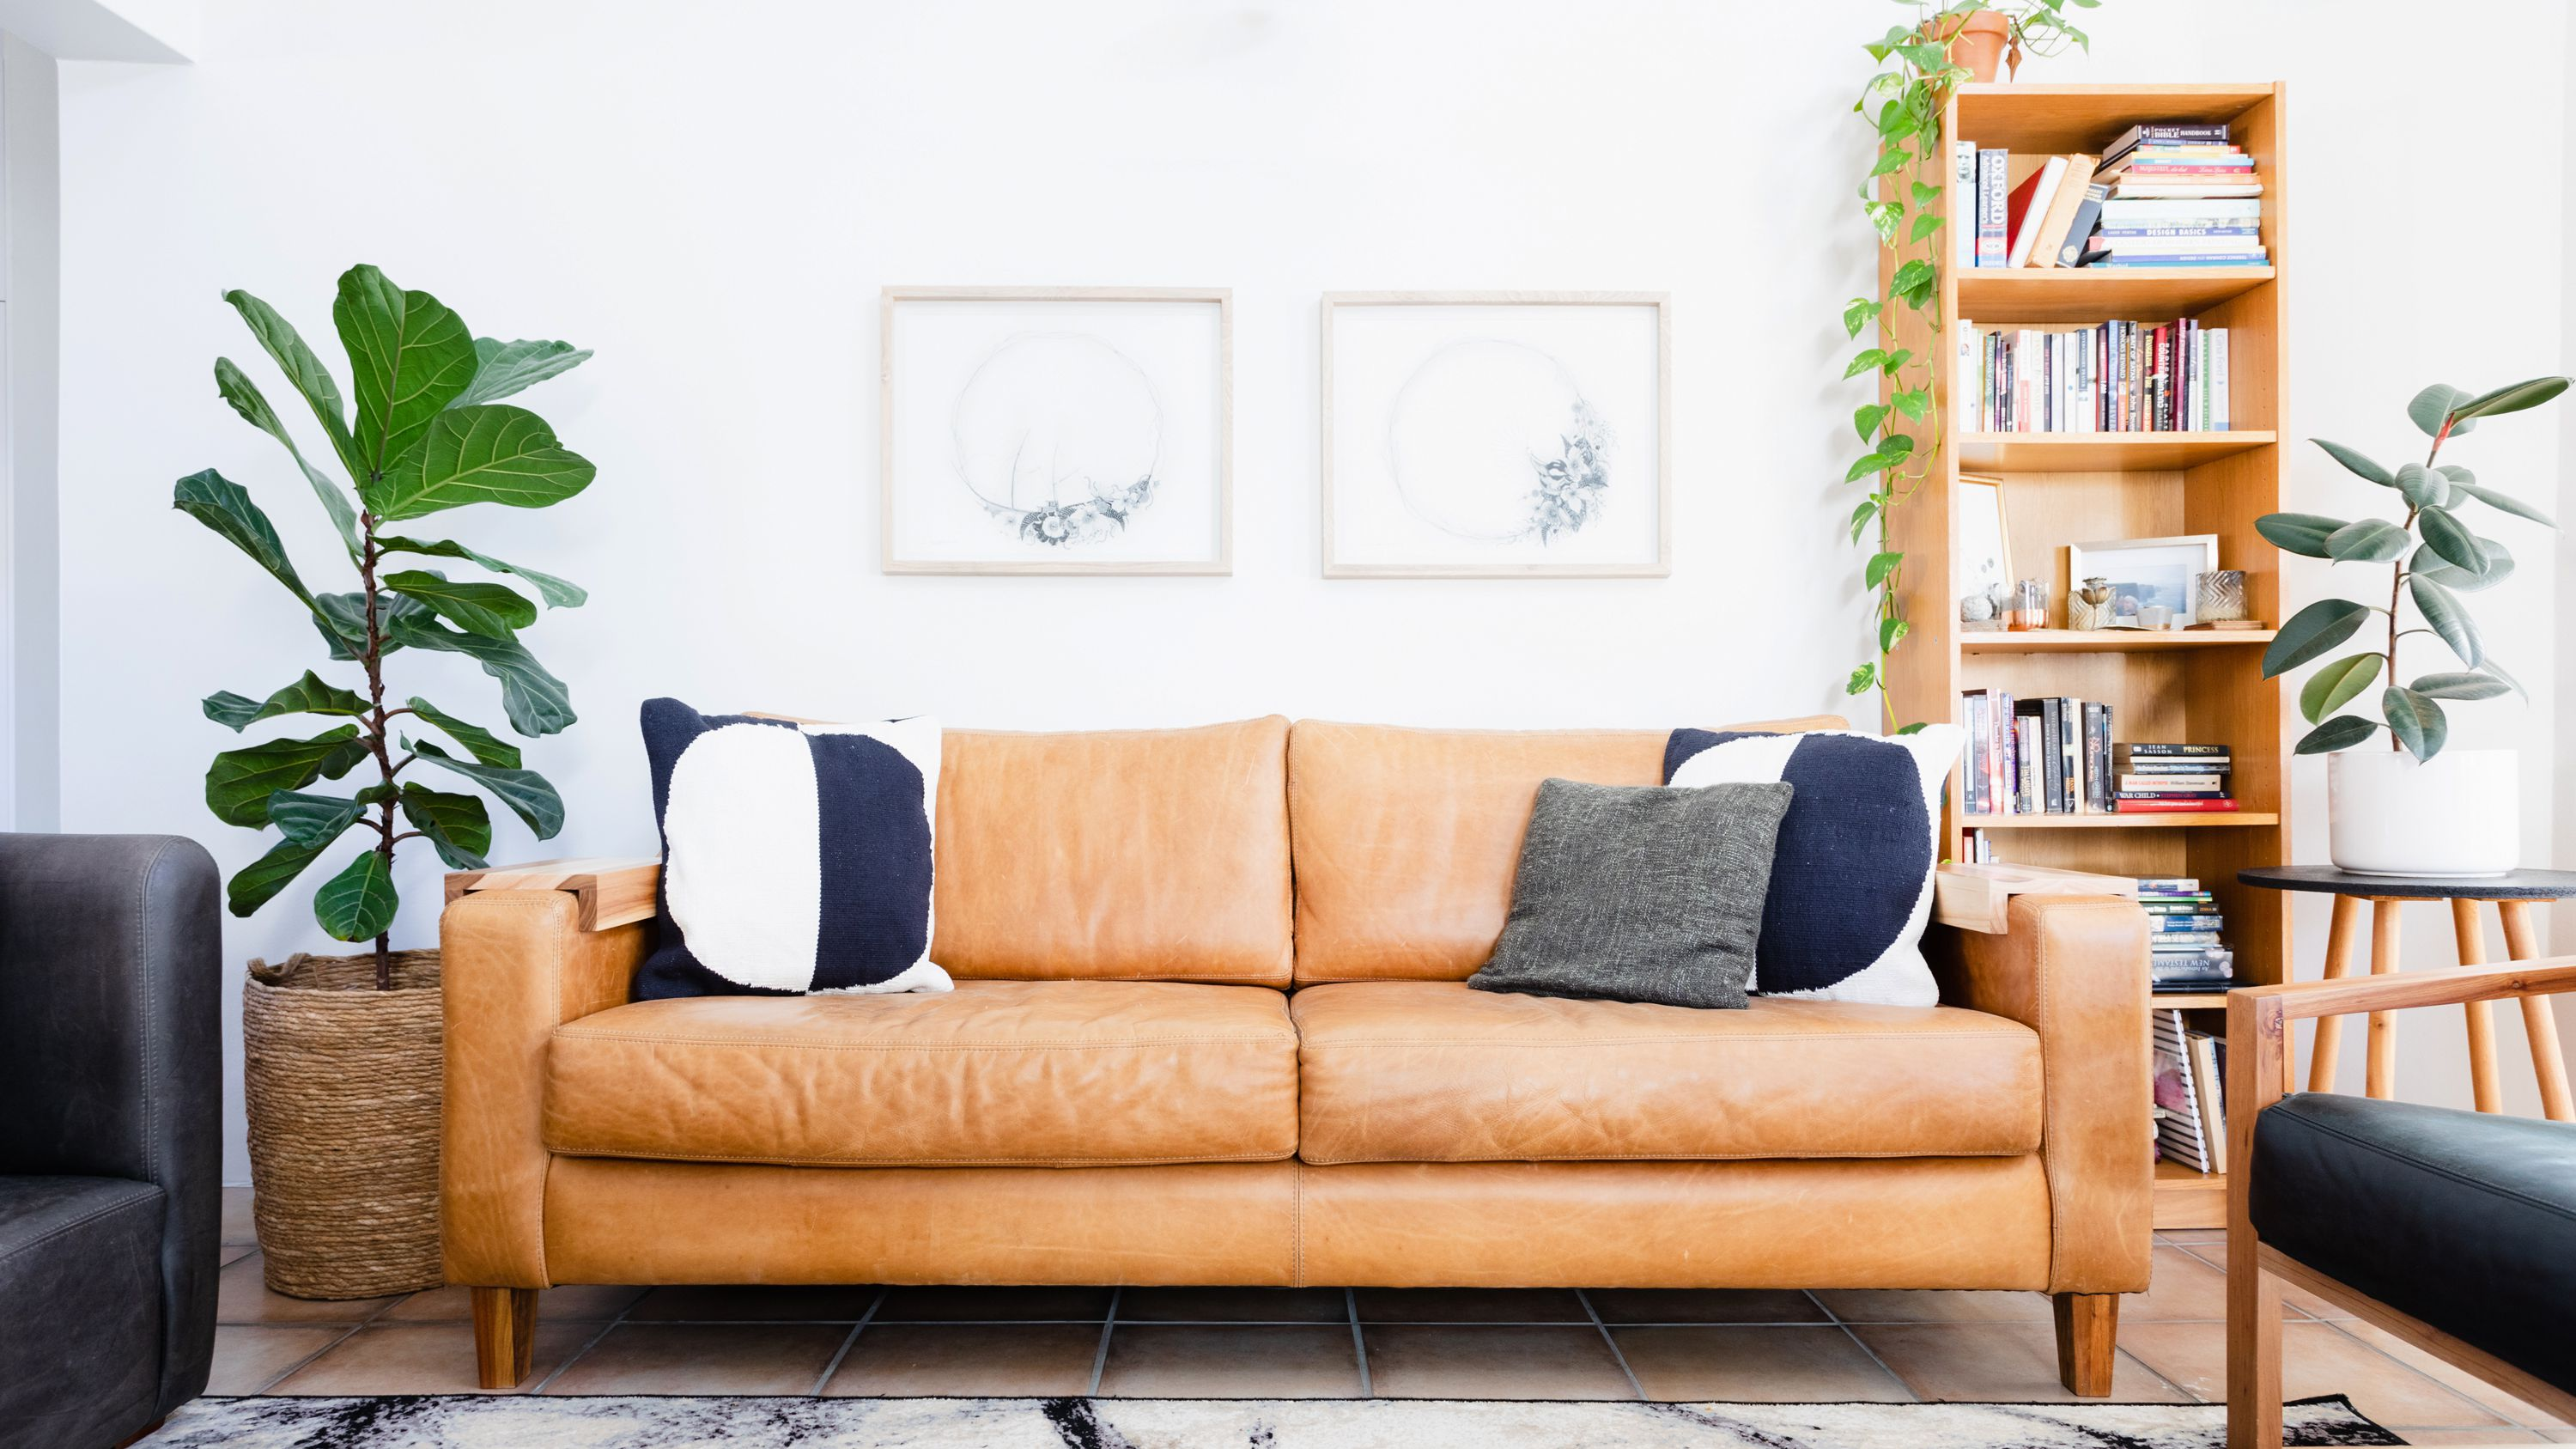 16 Ways To Decorate With Leather Furniture, Cottage Style Living Room With Leather Couch